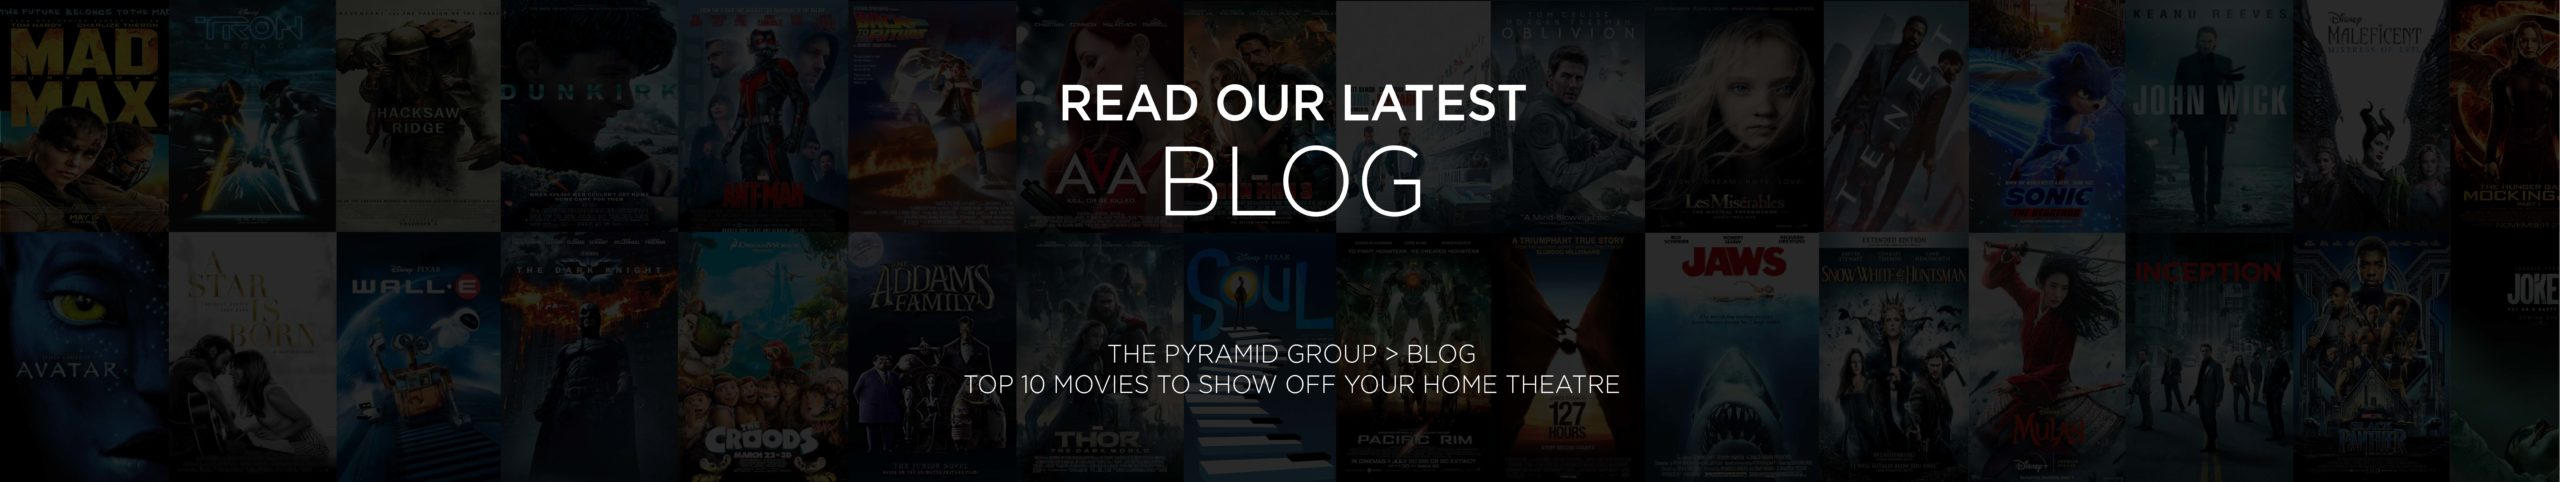 Top 10 movies to show off you home theatre - blog image